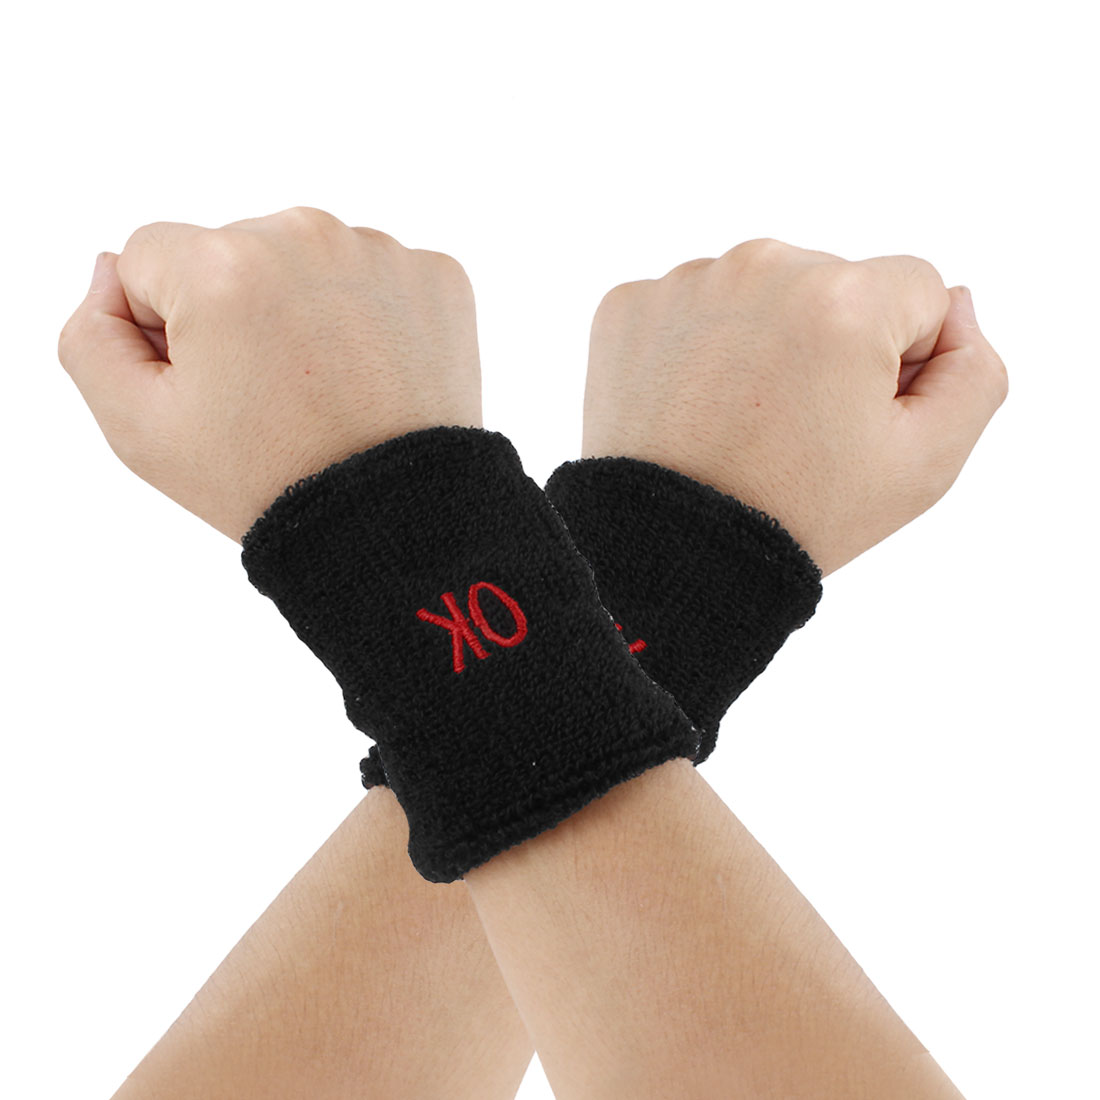 Terry Basketball Wristband Sweatband Support Black 2 Pcs for Sports Athletic